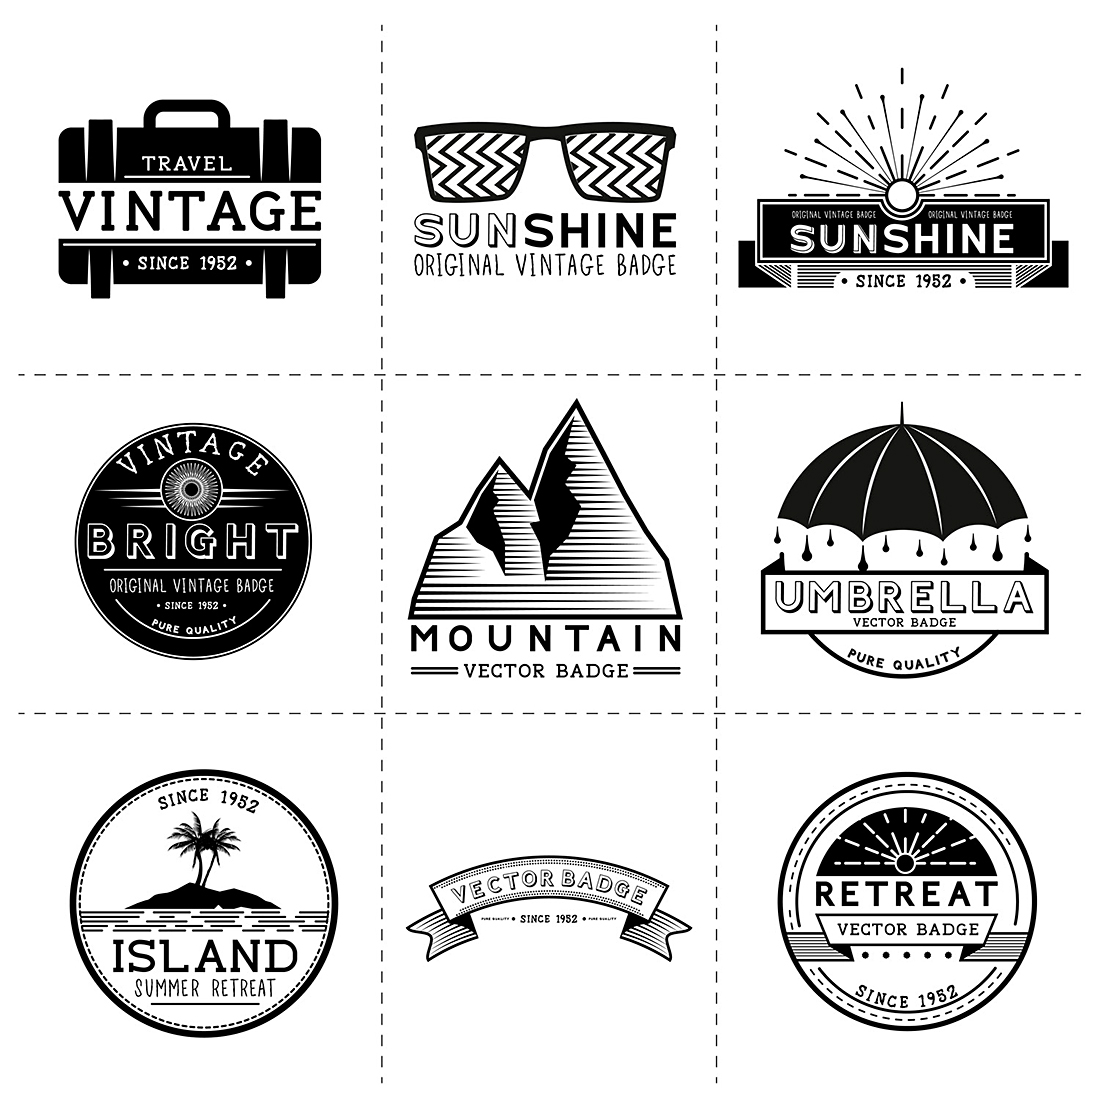 solarseven-vintage-travel-labels-%26-badges